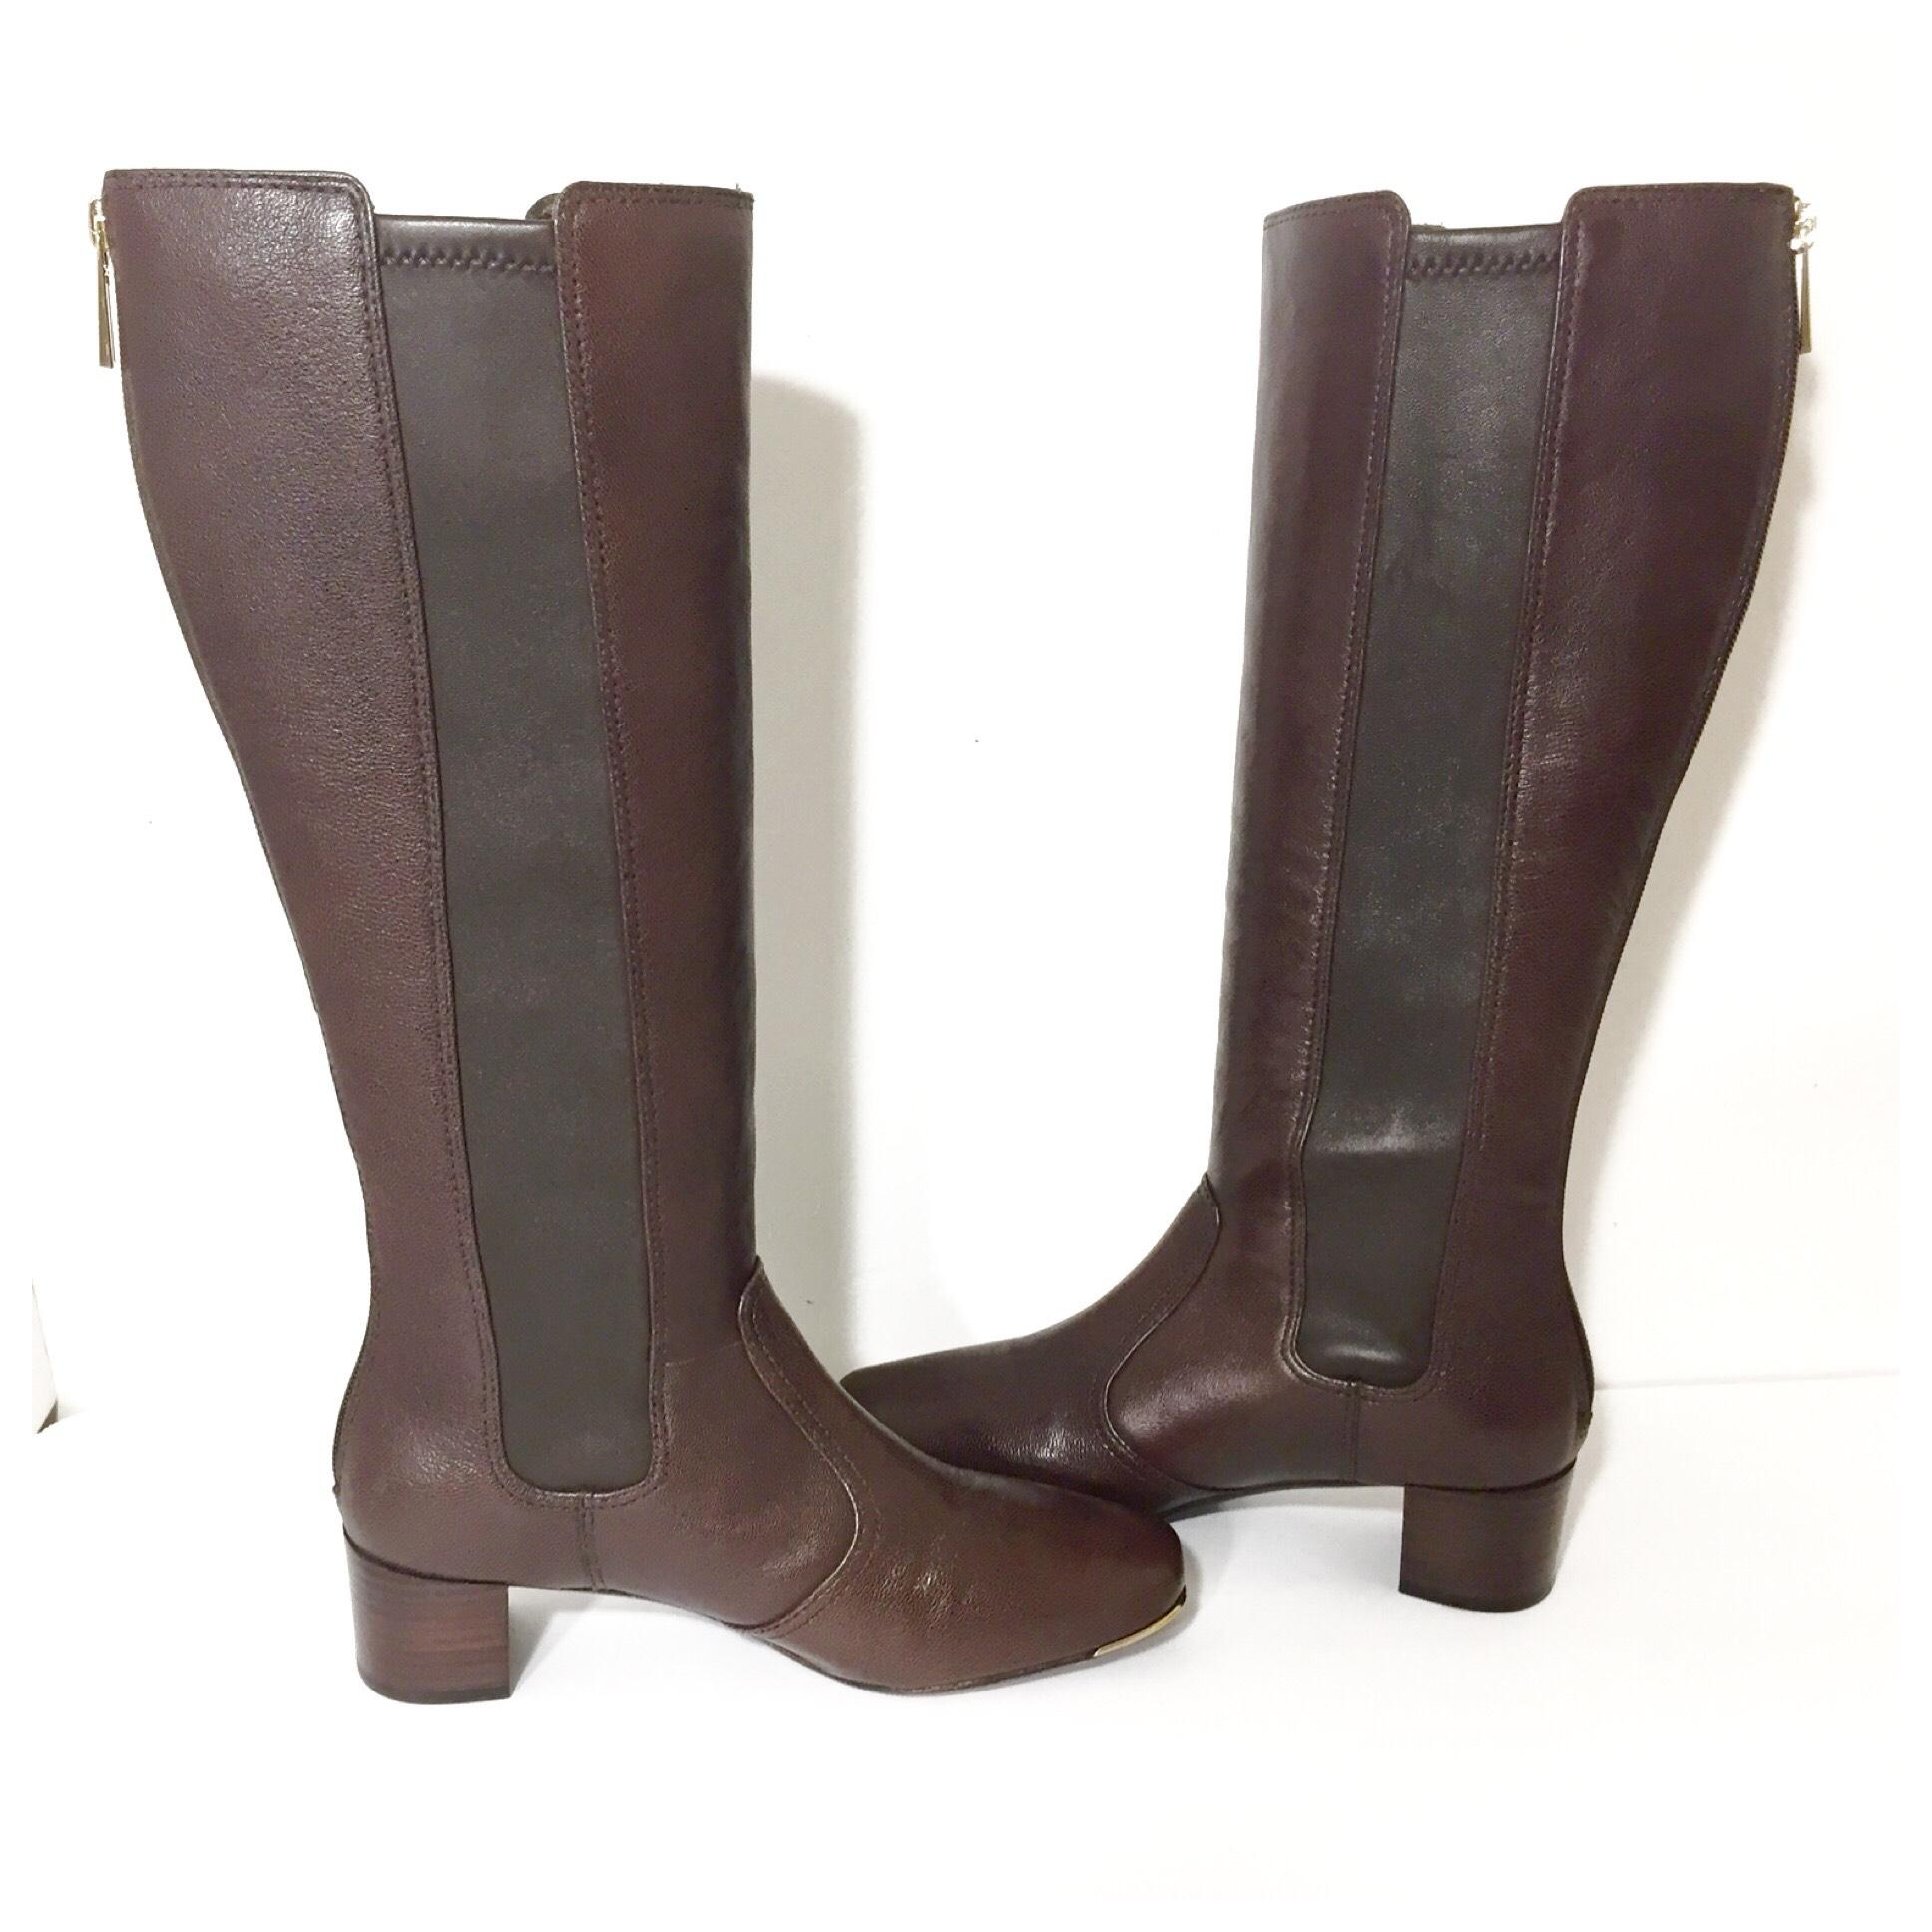 ab82f54ae ... Tory Burch Burch Burch Brown Ireland Stretch Leather Heeled Knee High  Tall Boots Booties Size